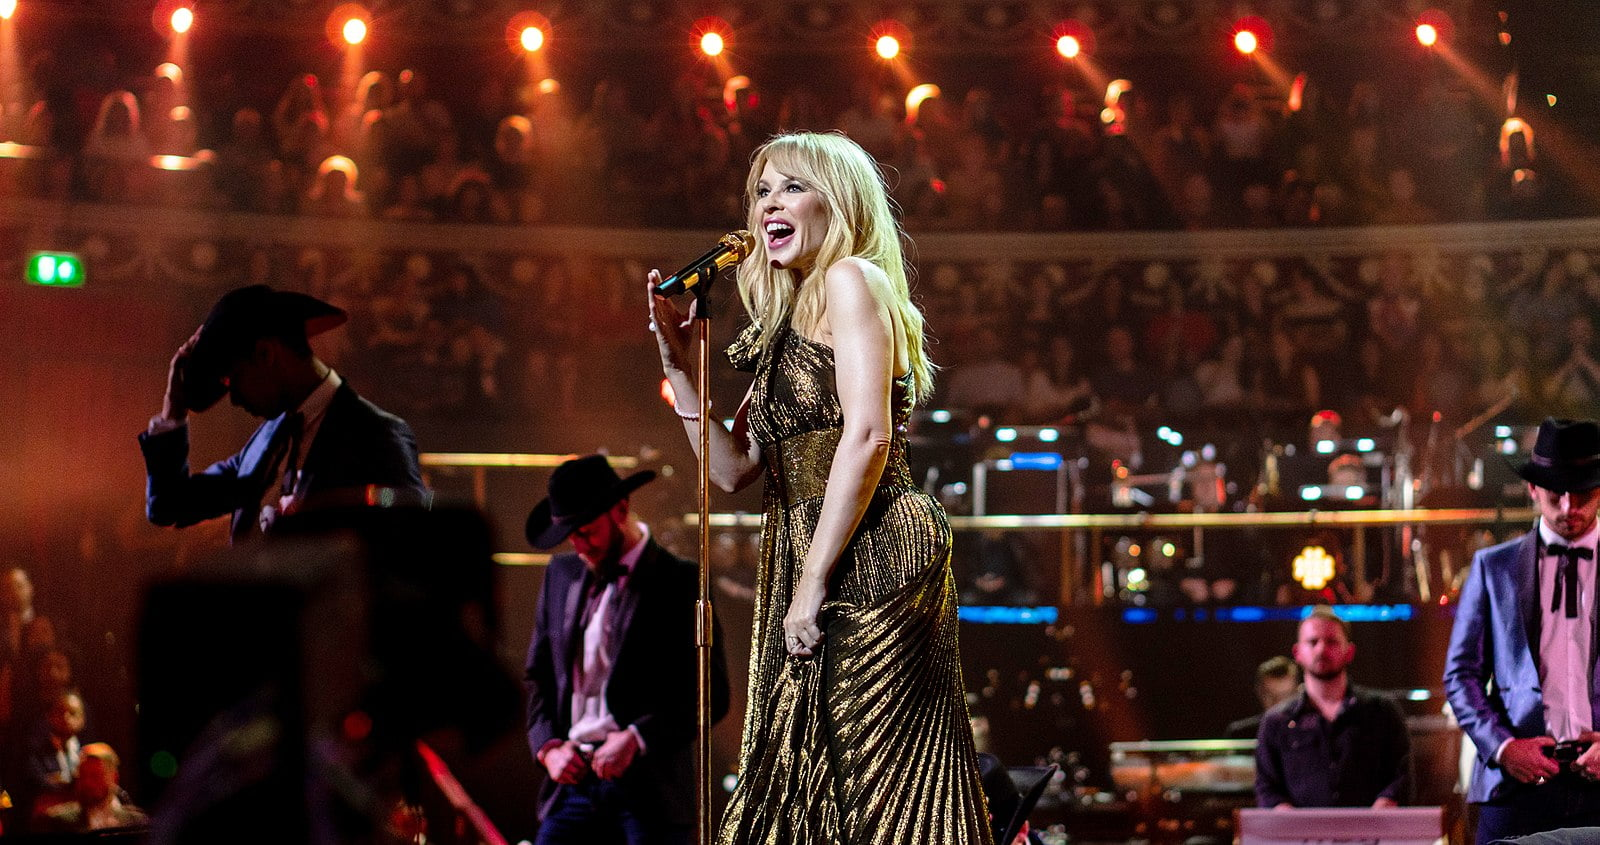 CSB has organised Scandinavian concerts for the likes of Kylie Minogue